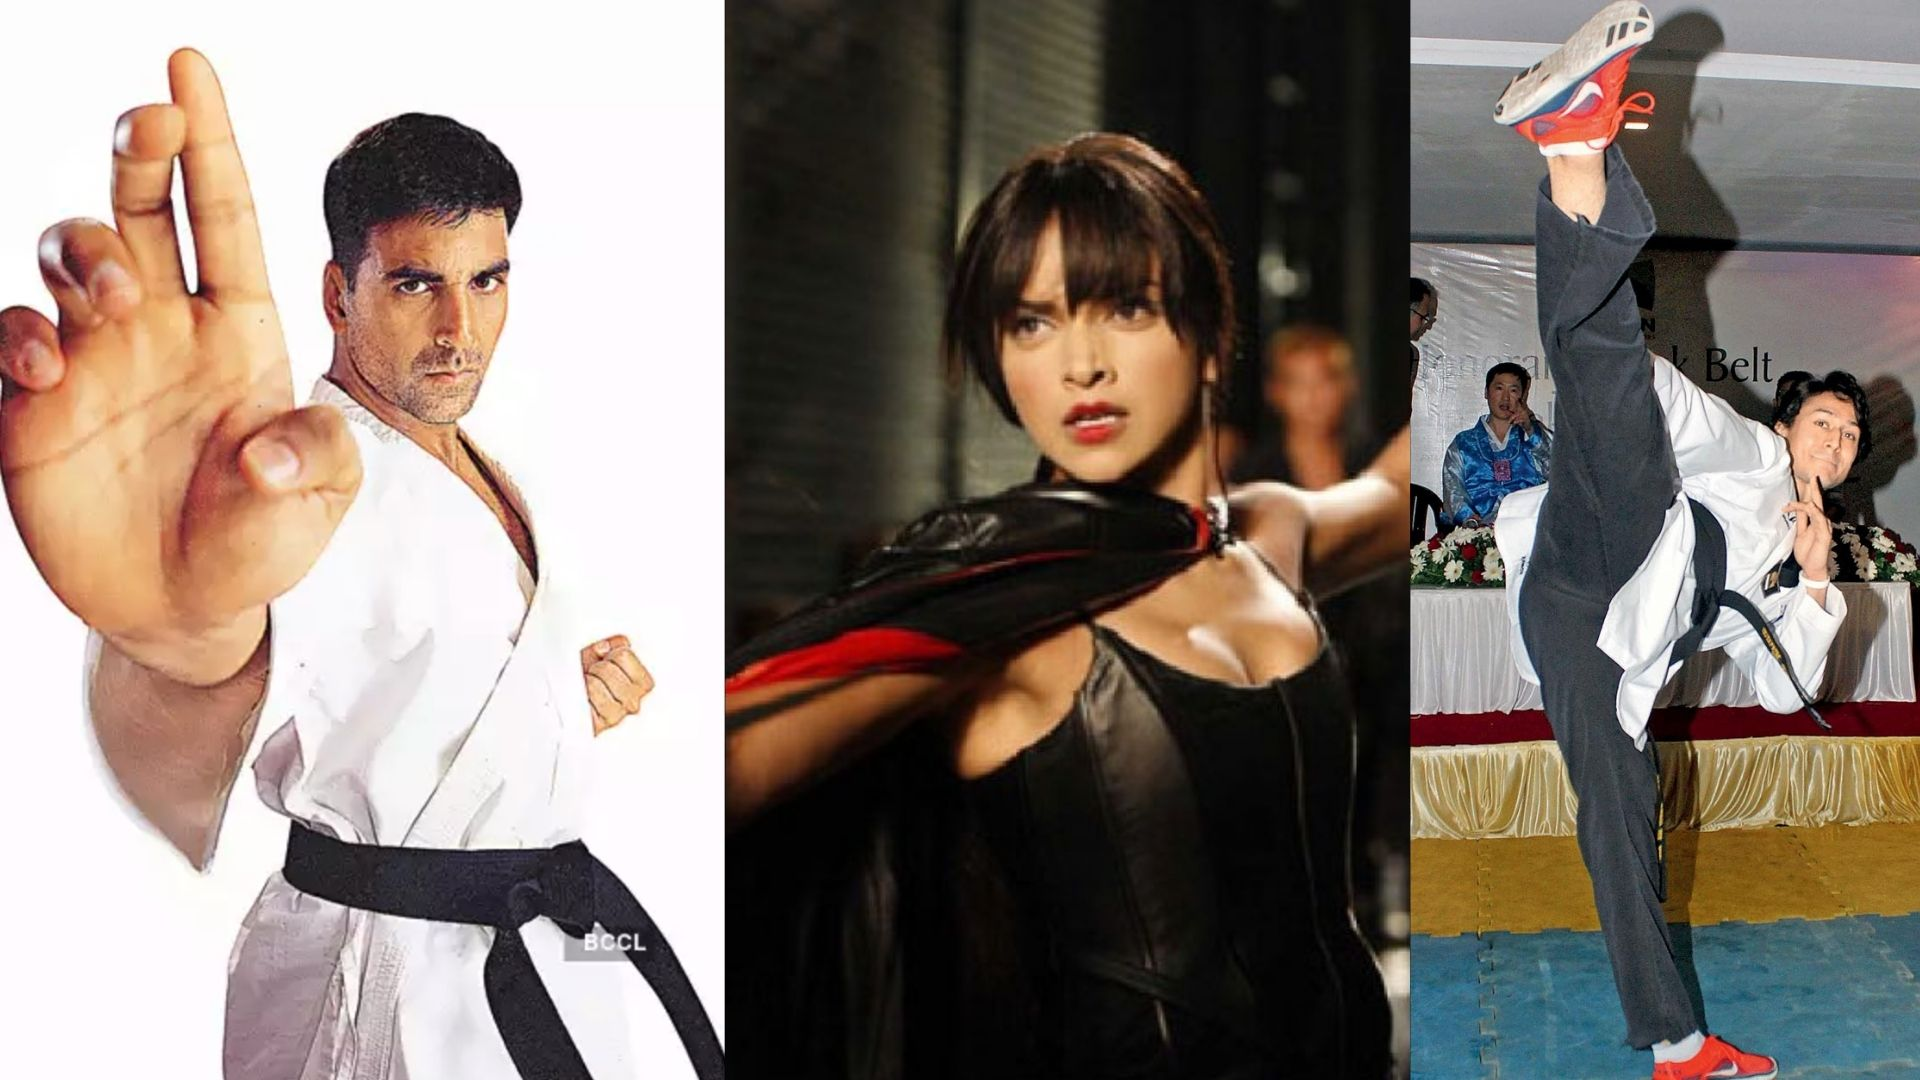 Deepika Padukone, Akshay Kumar, Shilpa Shetty And Other Actors Who Are Trained In Martial Arts